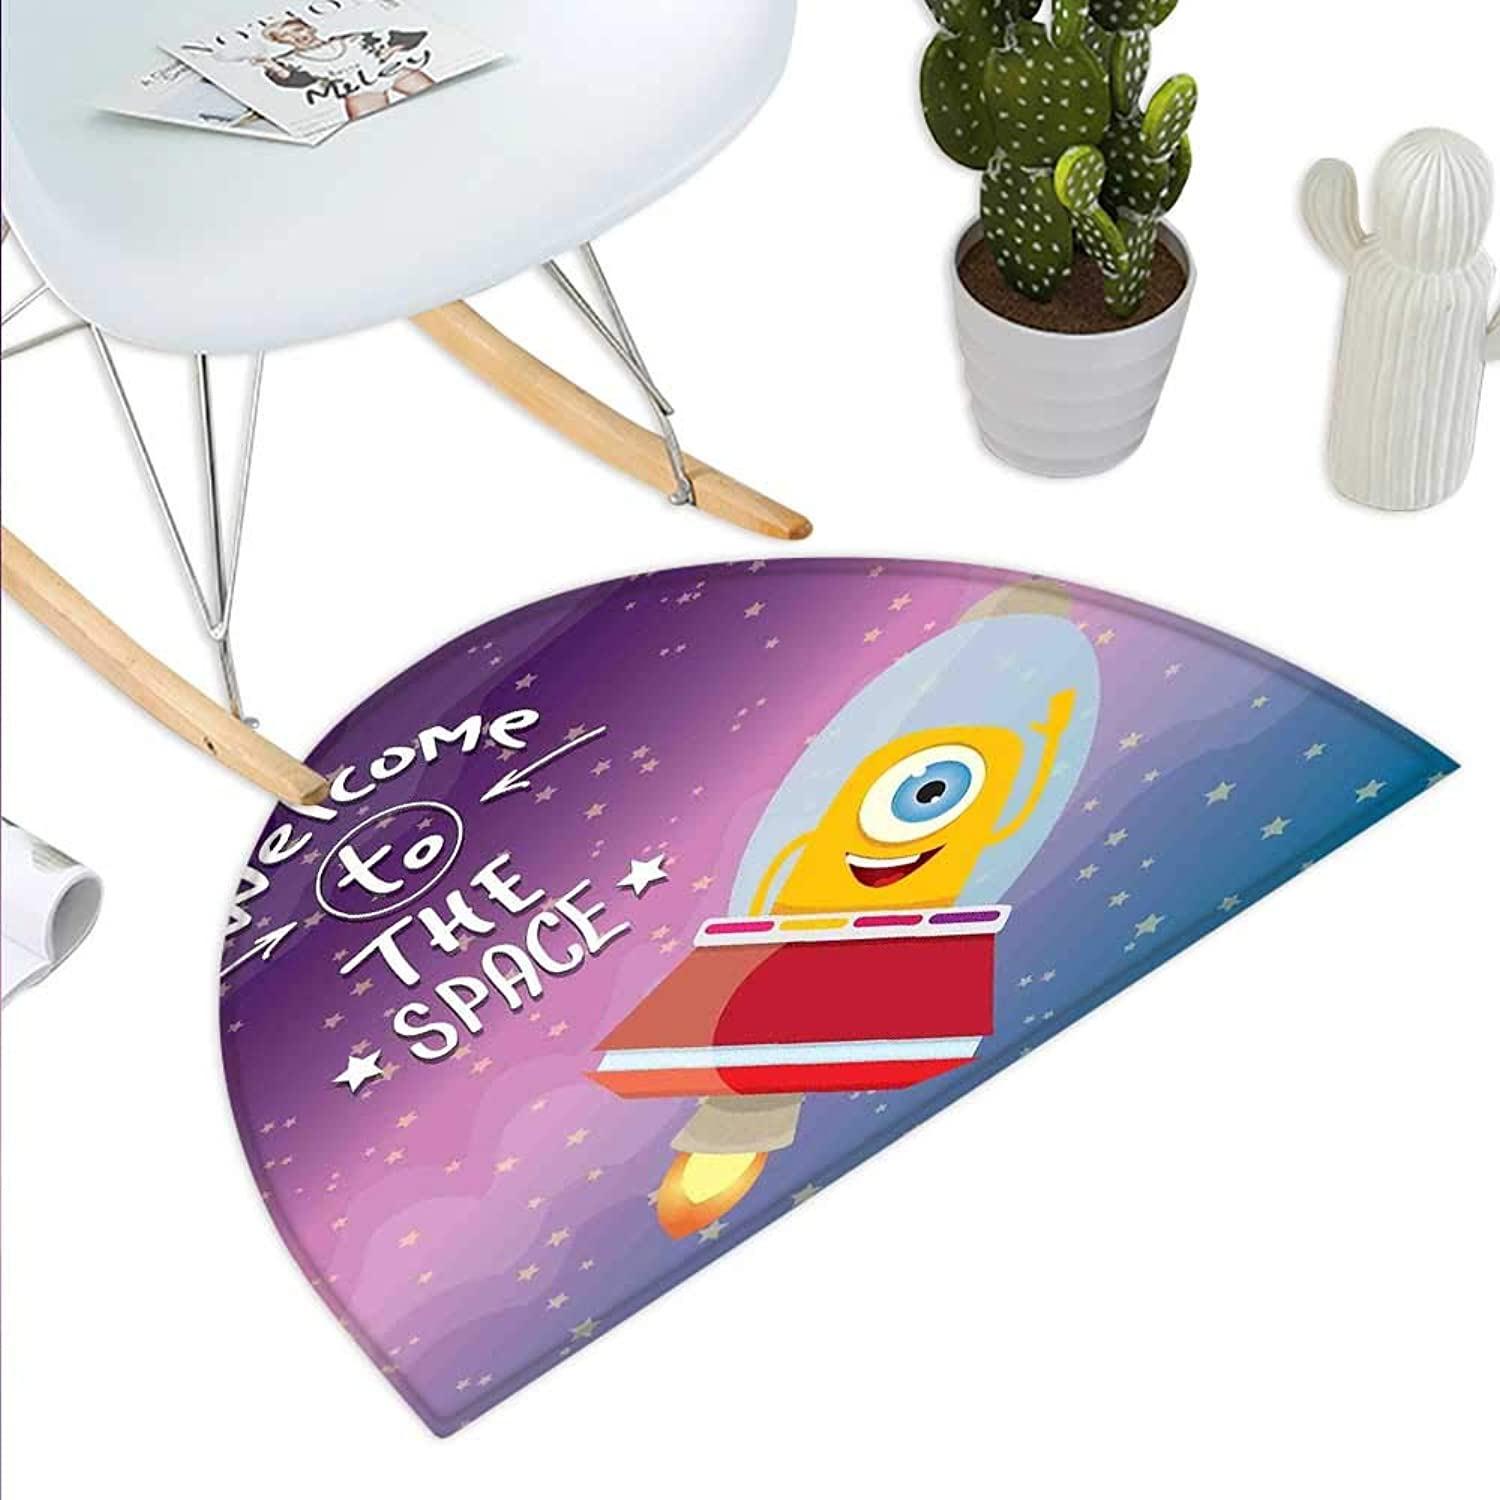 Outer Space Semicircle Doormat Welcoming Quote Print with Retro Style Mascot Vessel Traveling in Milky Way Halfmoon doormats H 43.3  xD 64.9  Purple bluee